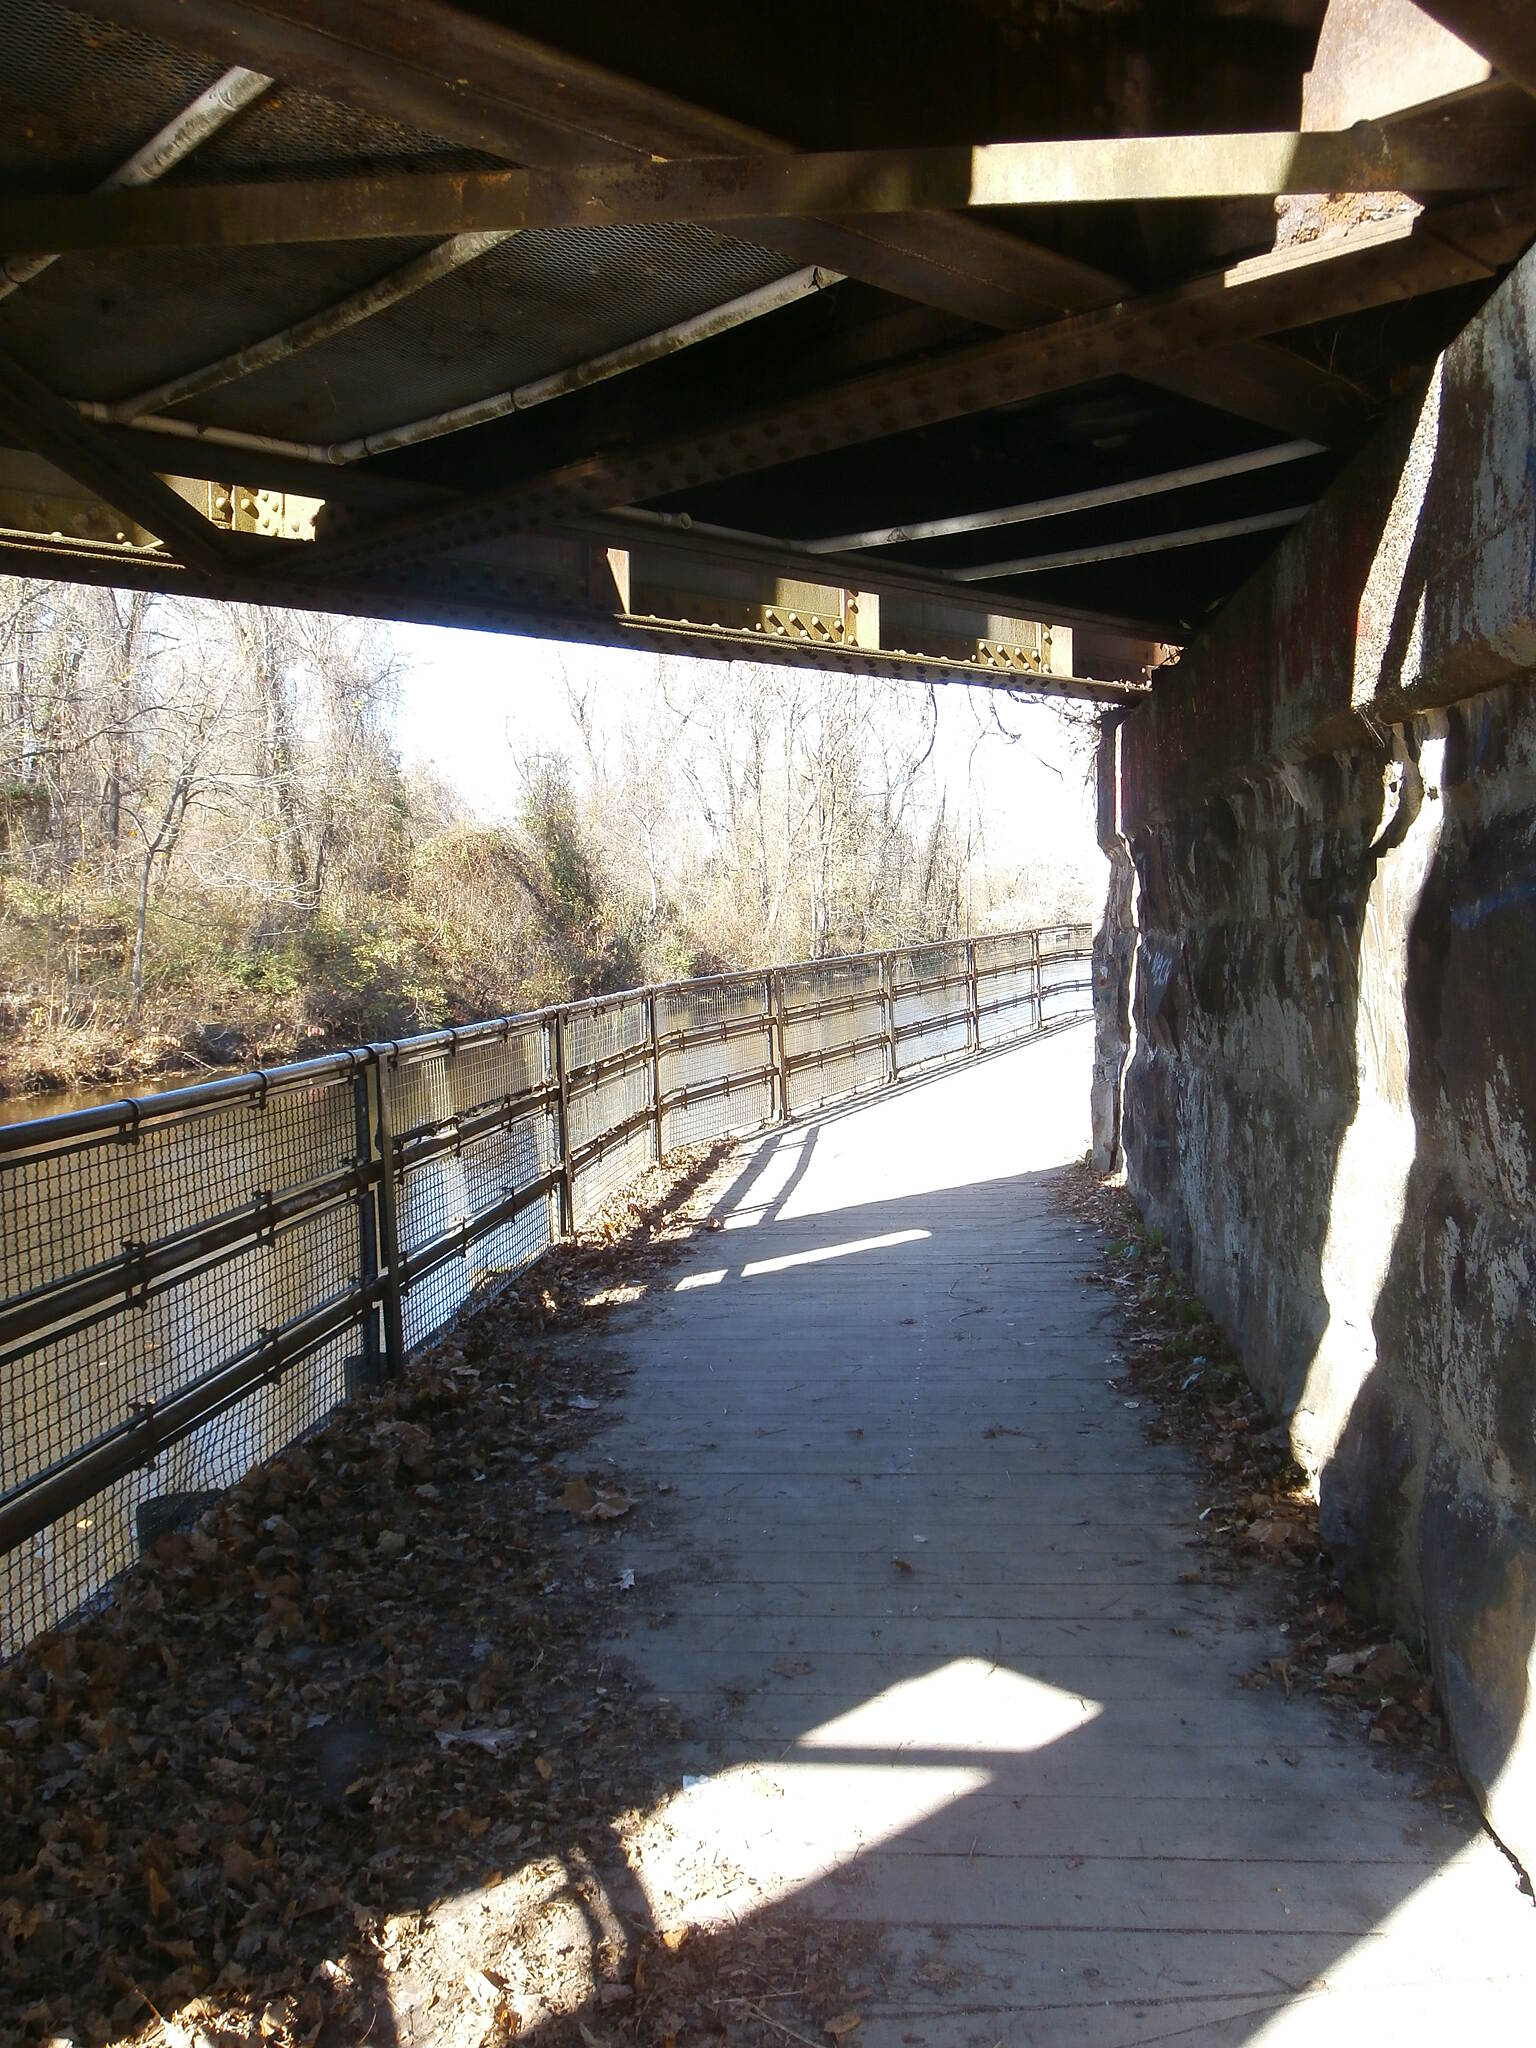 Delaware and Raritan Canal State Park Trail Duck For all you tall folks..........remeber to duck when riding under the train trestle